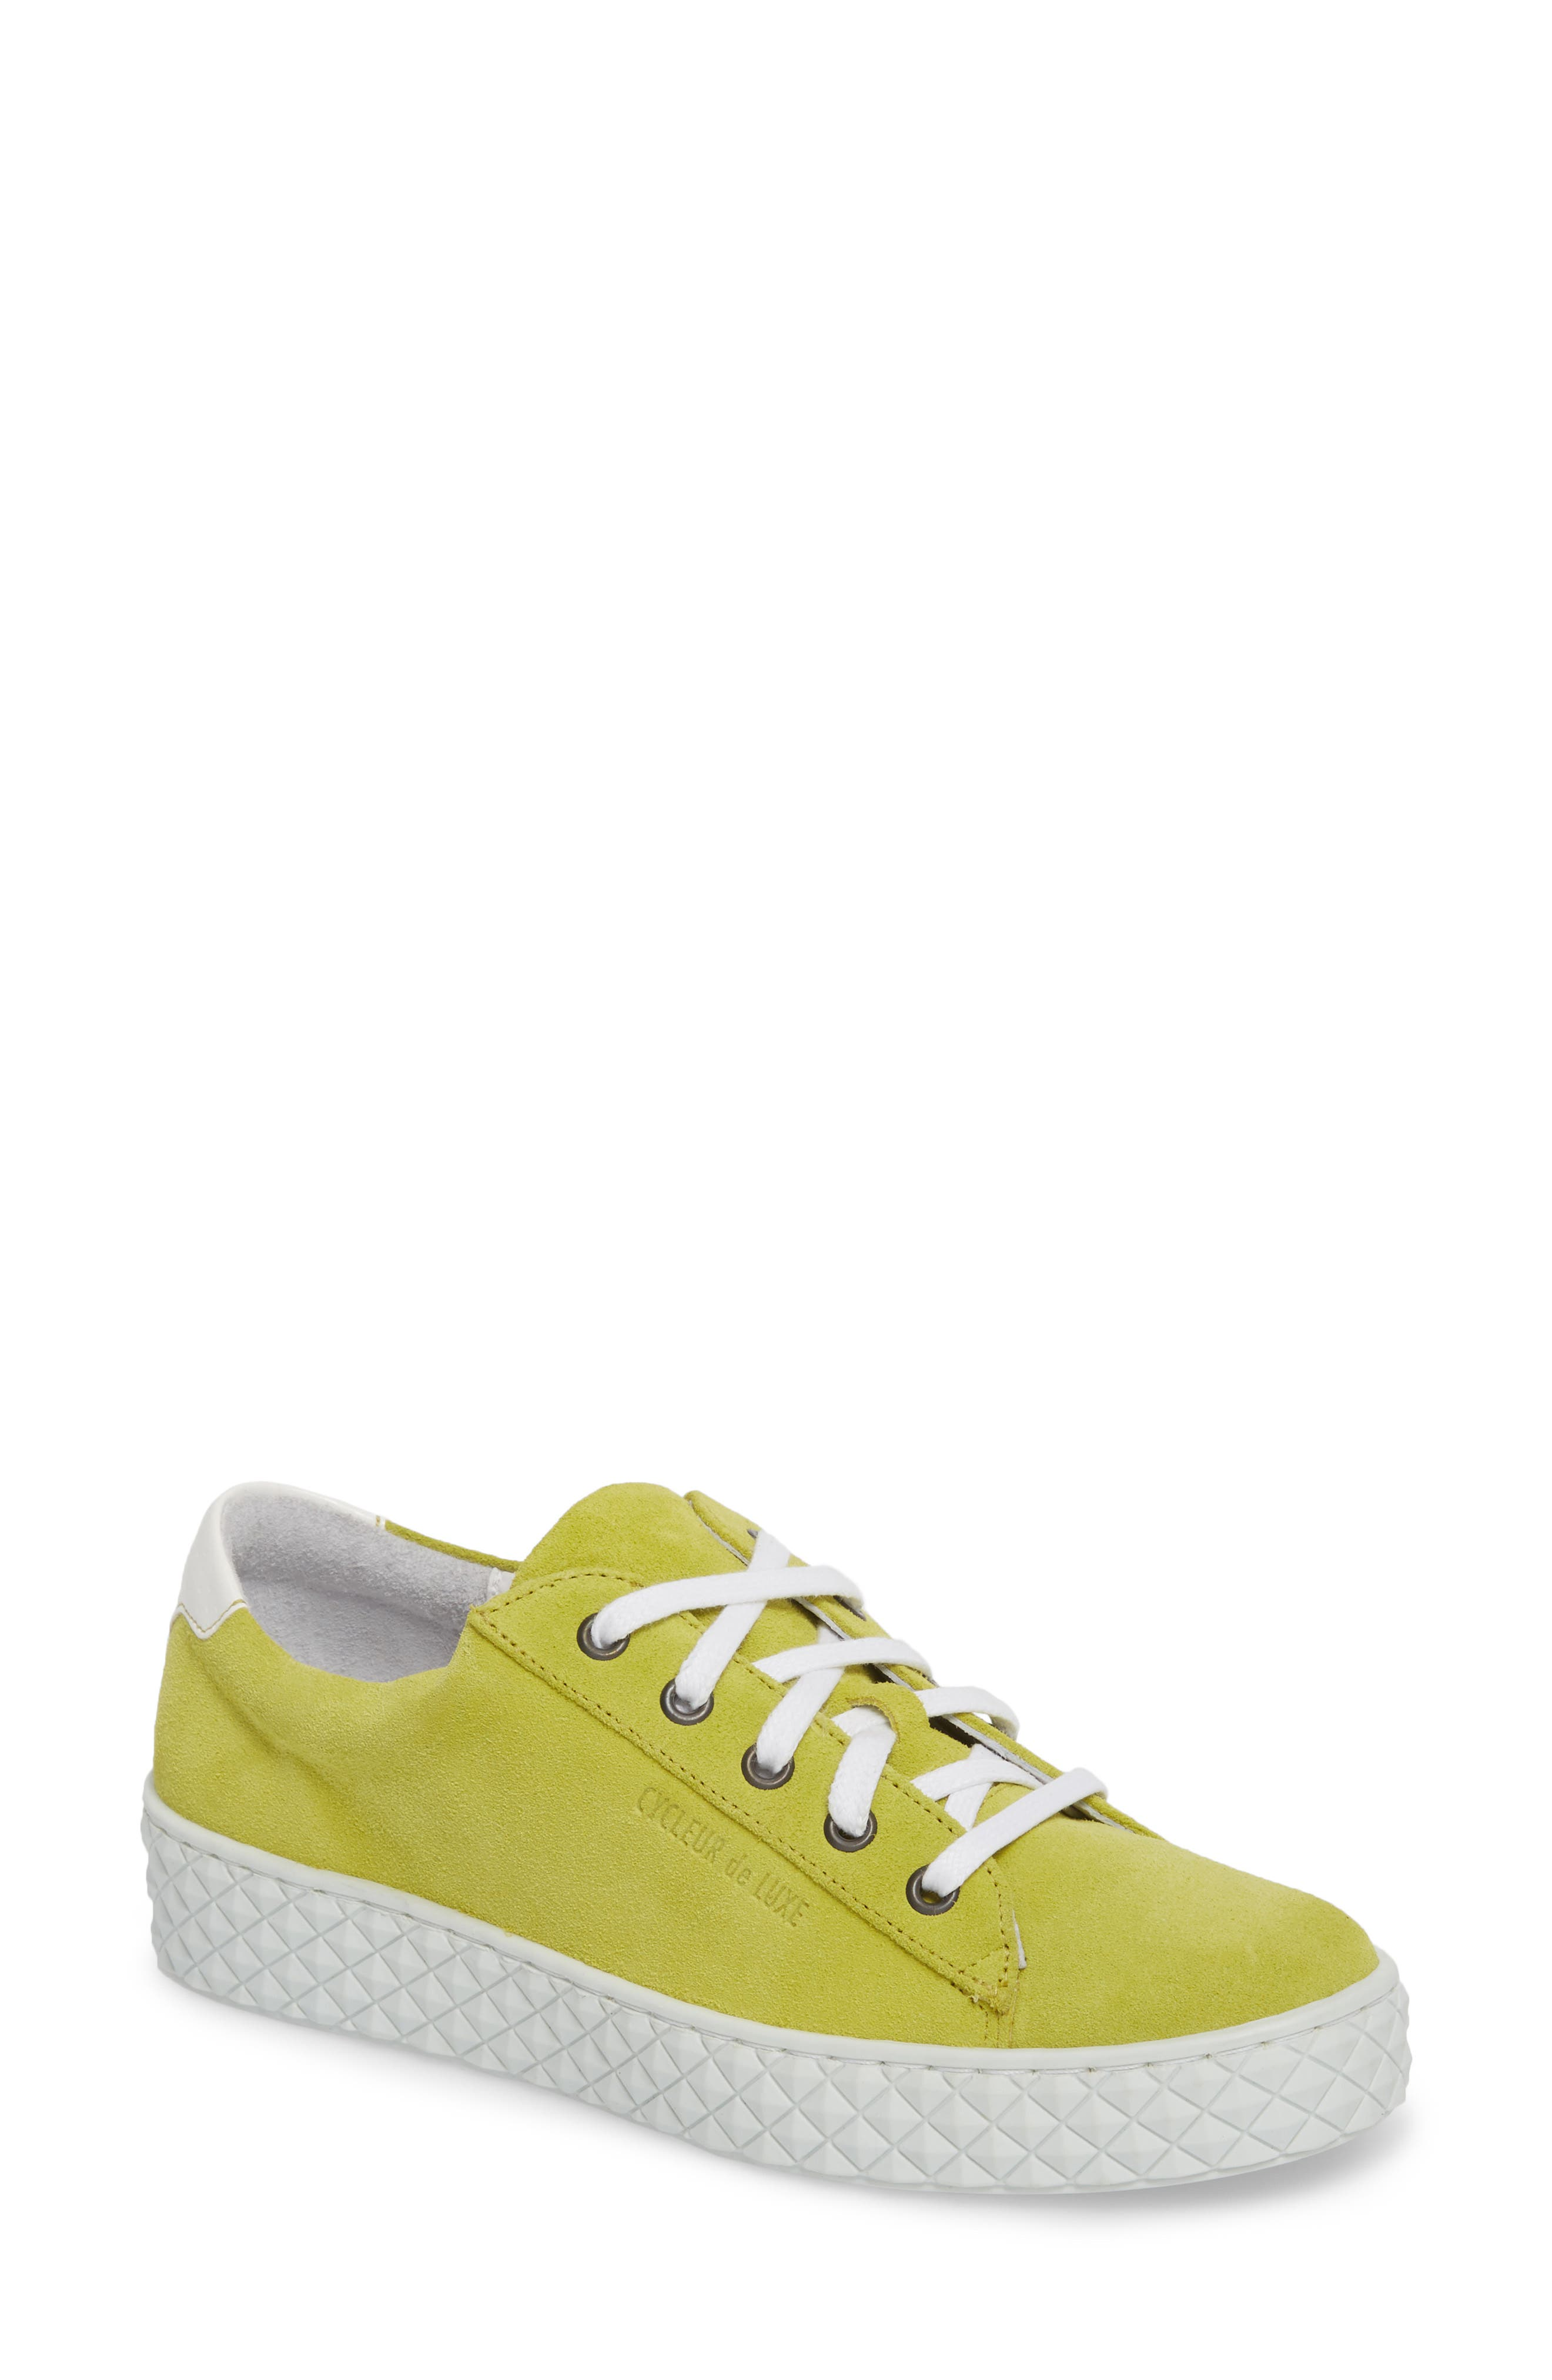 Albufeira Sneaker,                             Main thumbnail 1, color,                             Lime/ Optic White Suede